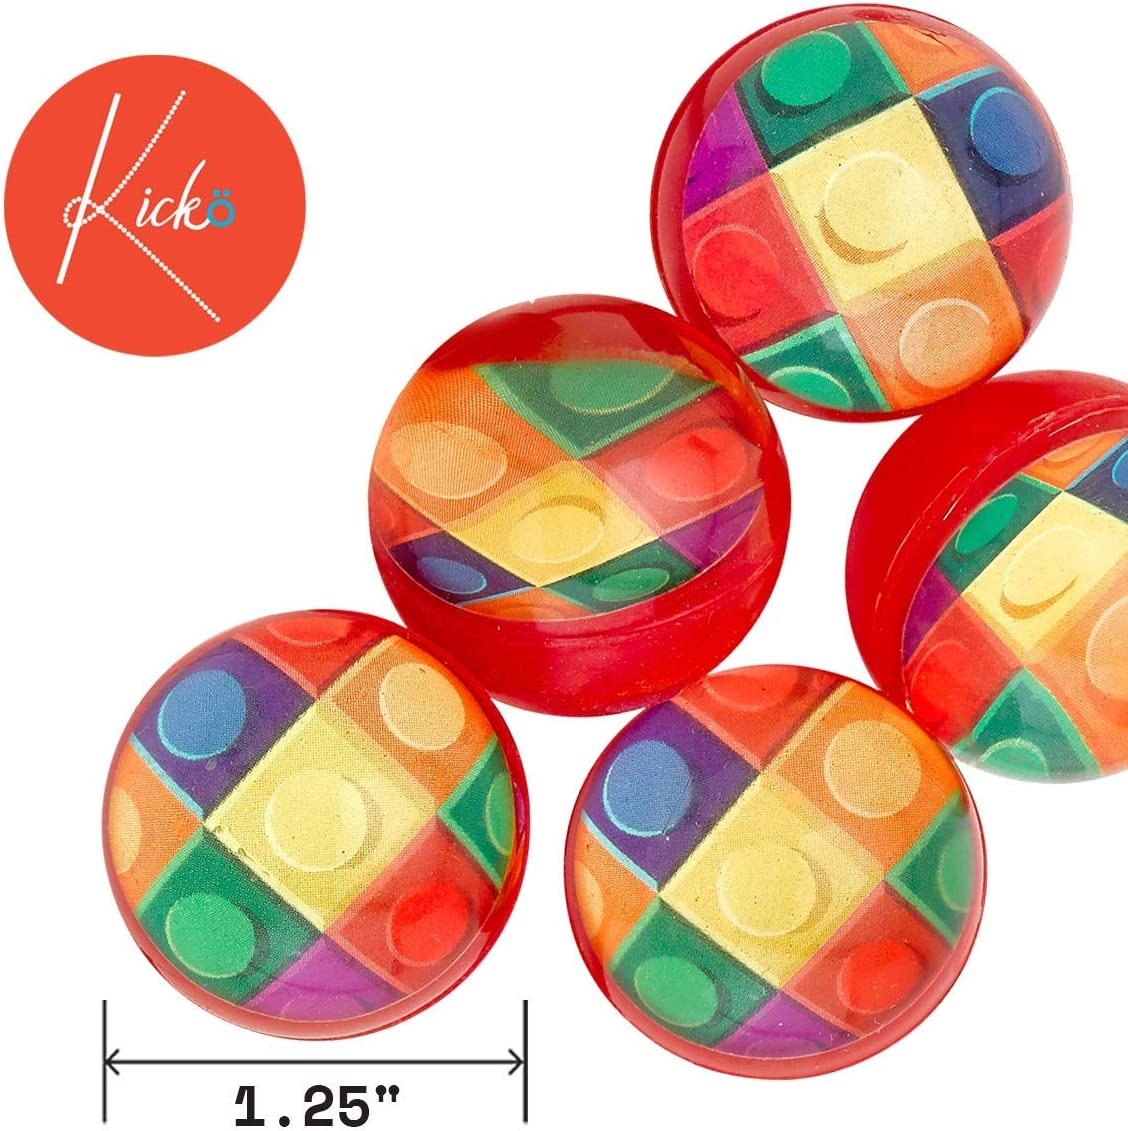 Pinata Fillers Party Favors Decorations Birthday Supplies Kicko Block Mania Bounce Balls and Rewards 32 mm Classroom Prizes 12 Pack for Kids Stocking Stuffers Holidays